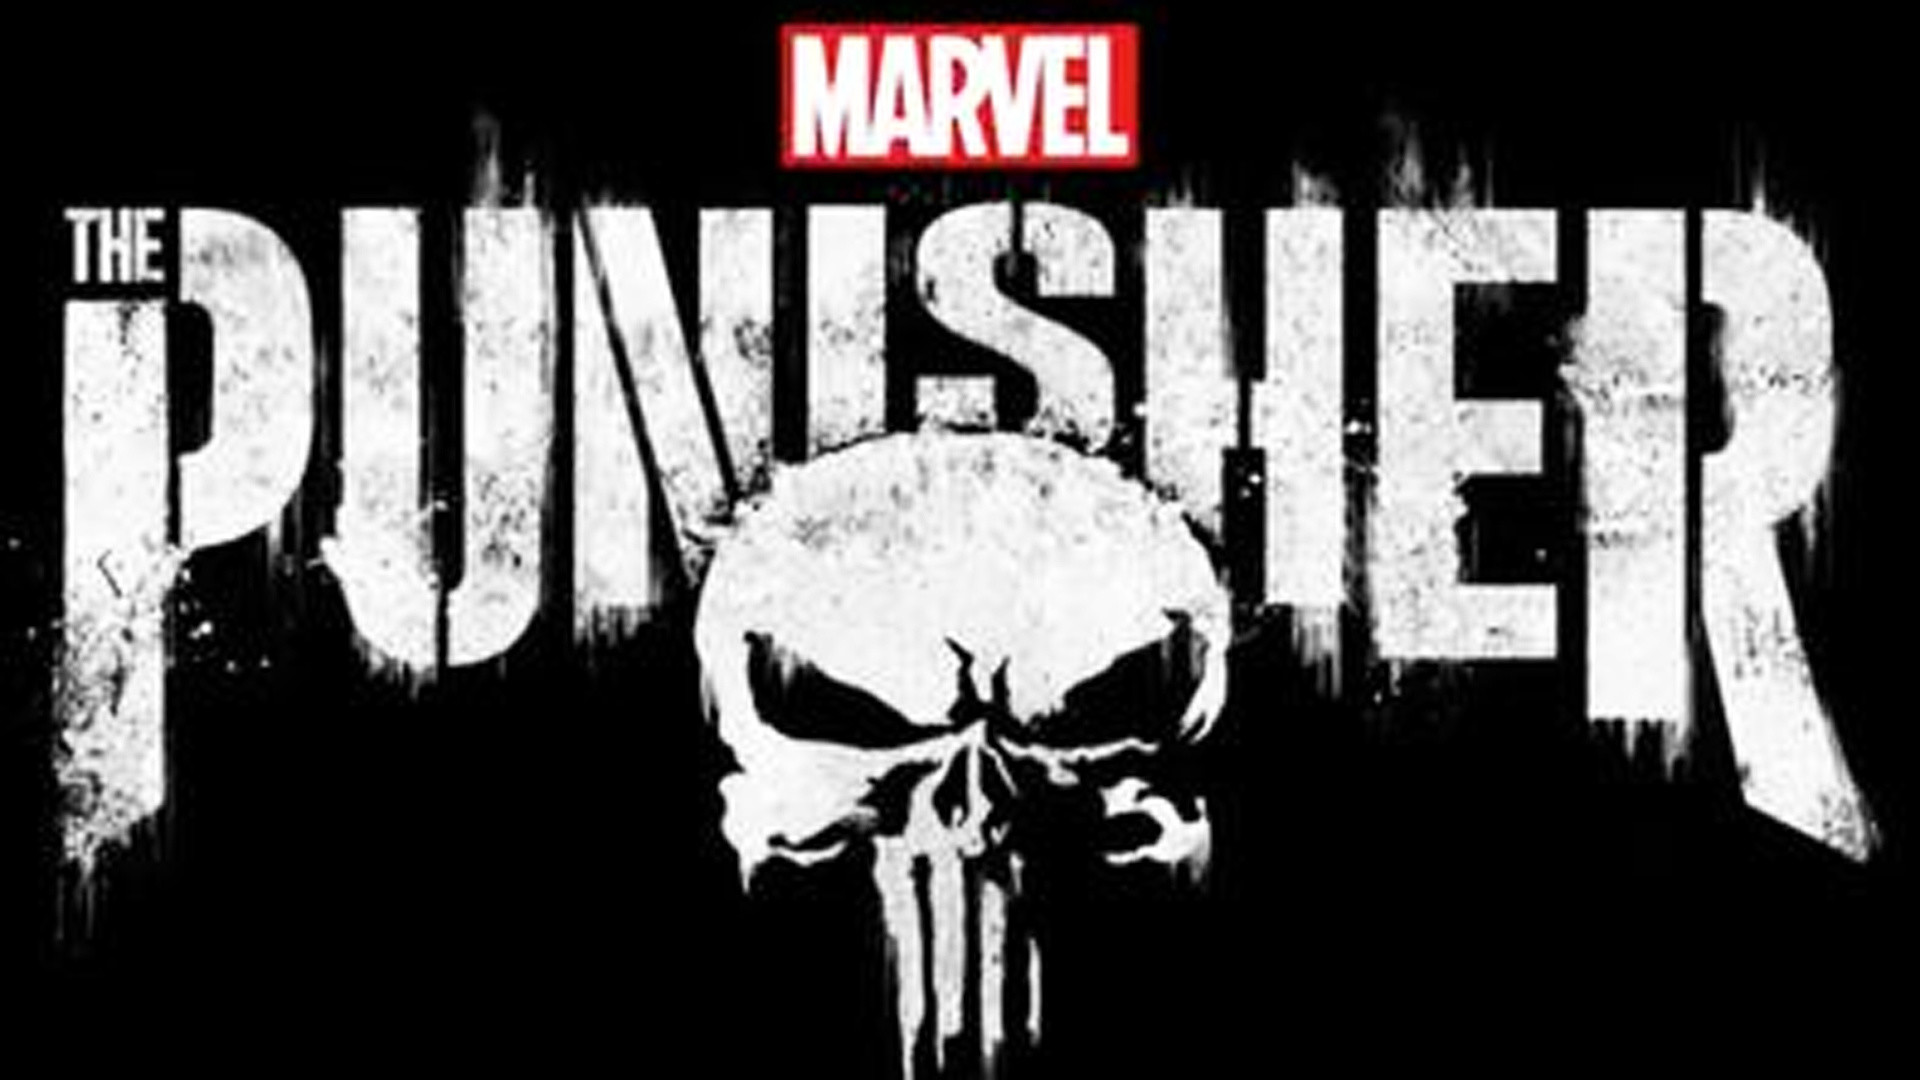 1920x1080 Marvel's The Punisher - Bilder, Poster & weitere Details zur neuen  Netflix-Serie - GameStar